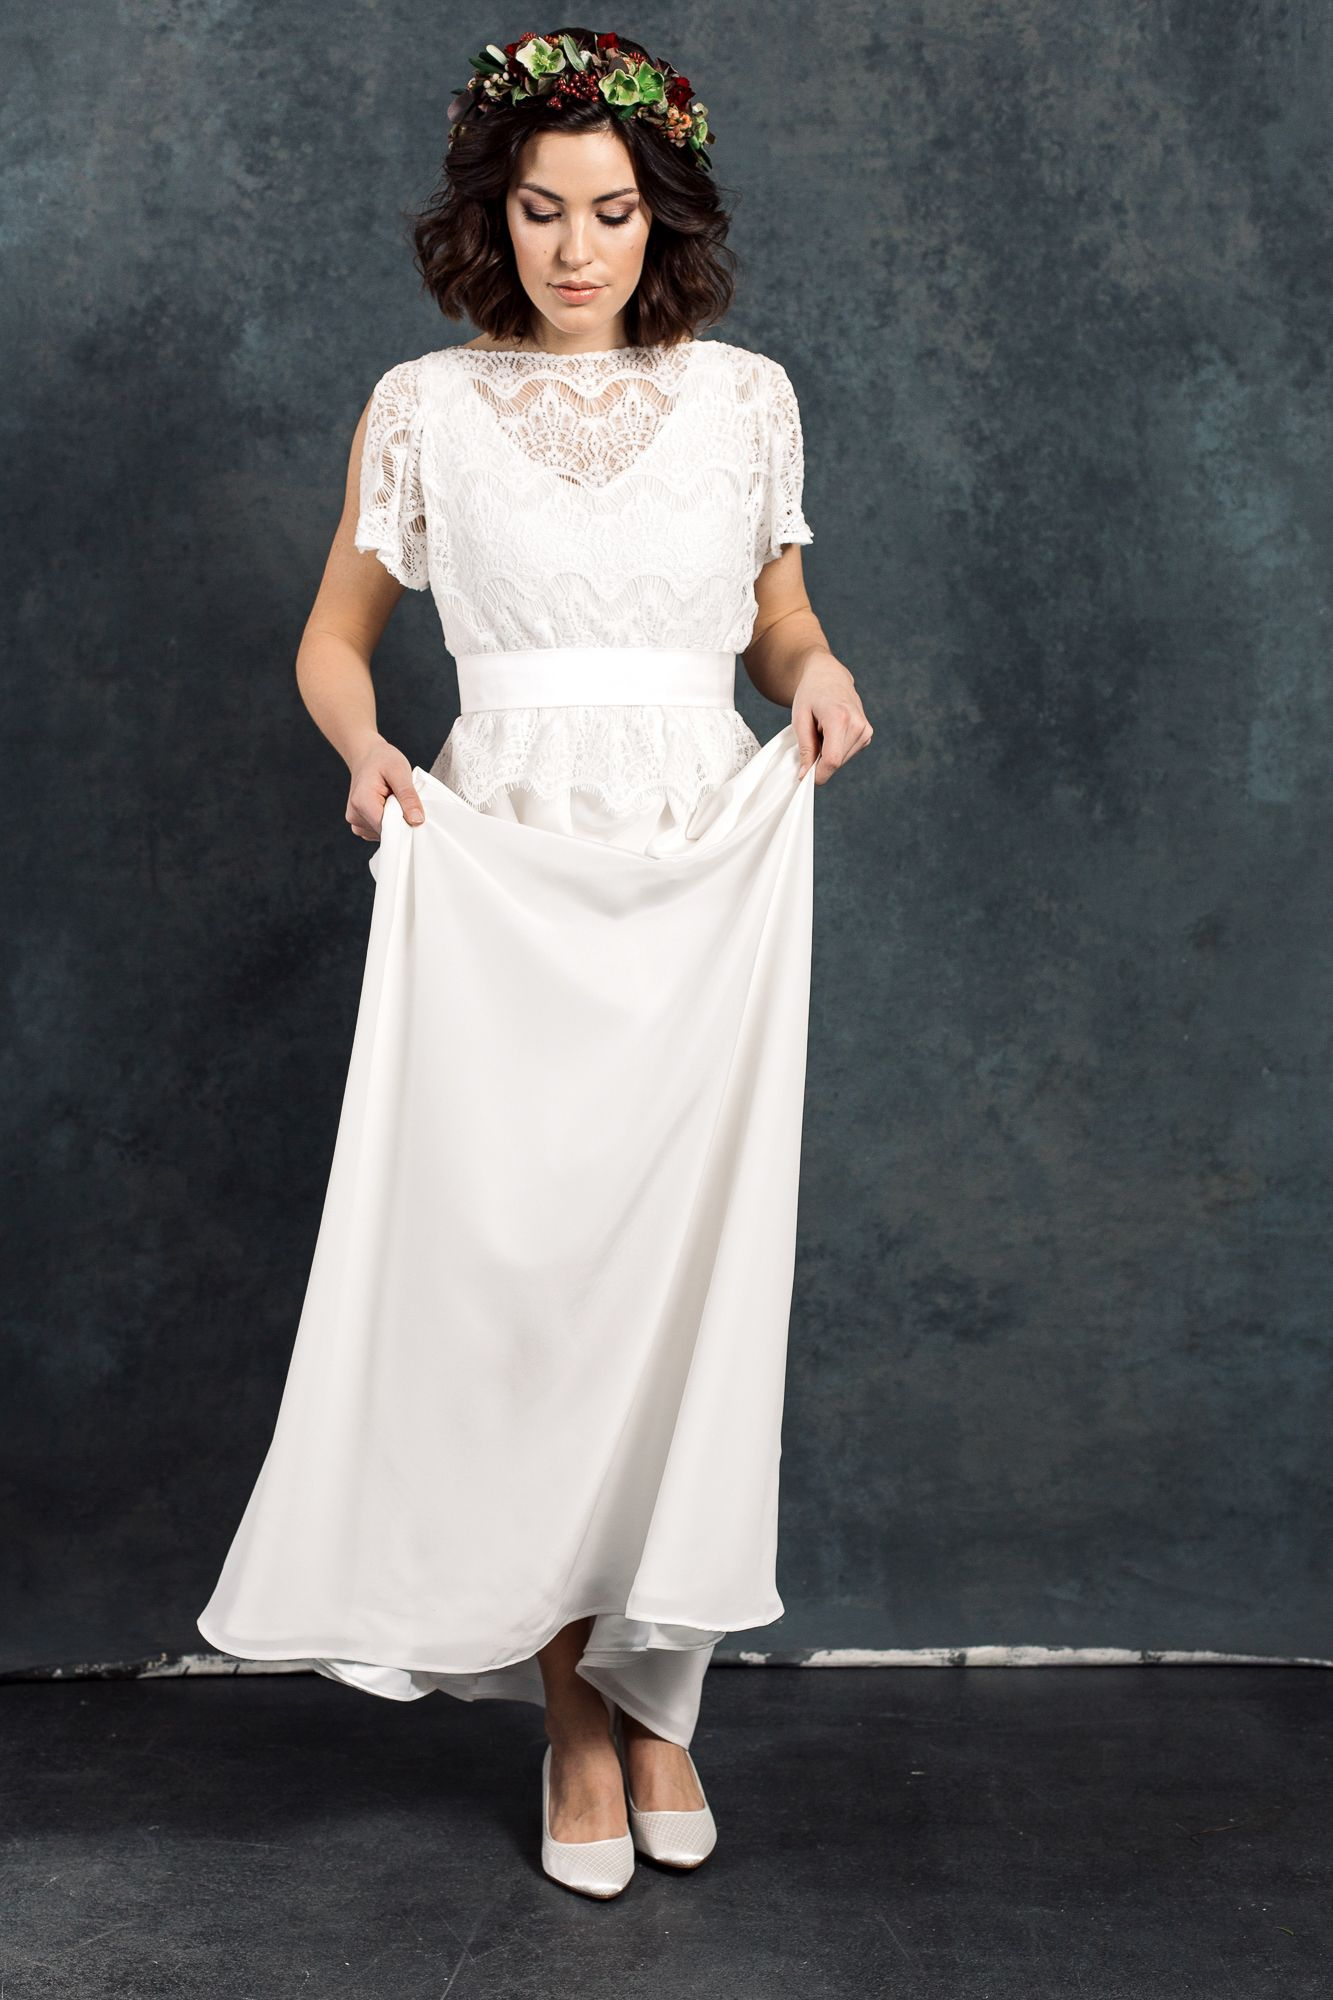 Labude Brautkleid Viola - Bridal Dress Boho- Vintagestil Lace Top ...